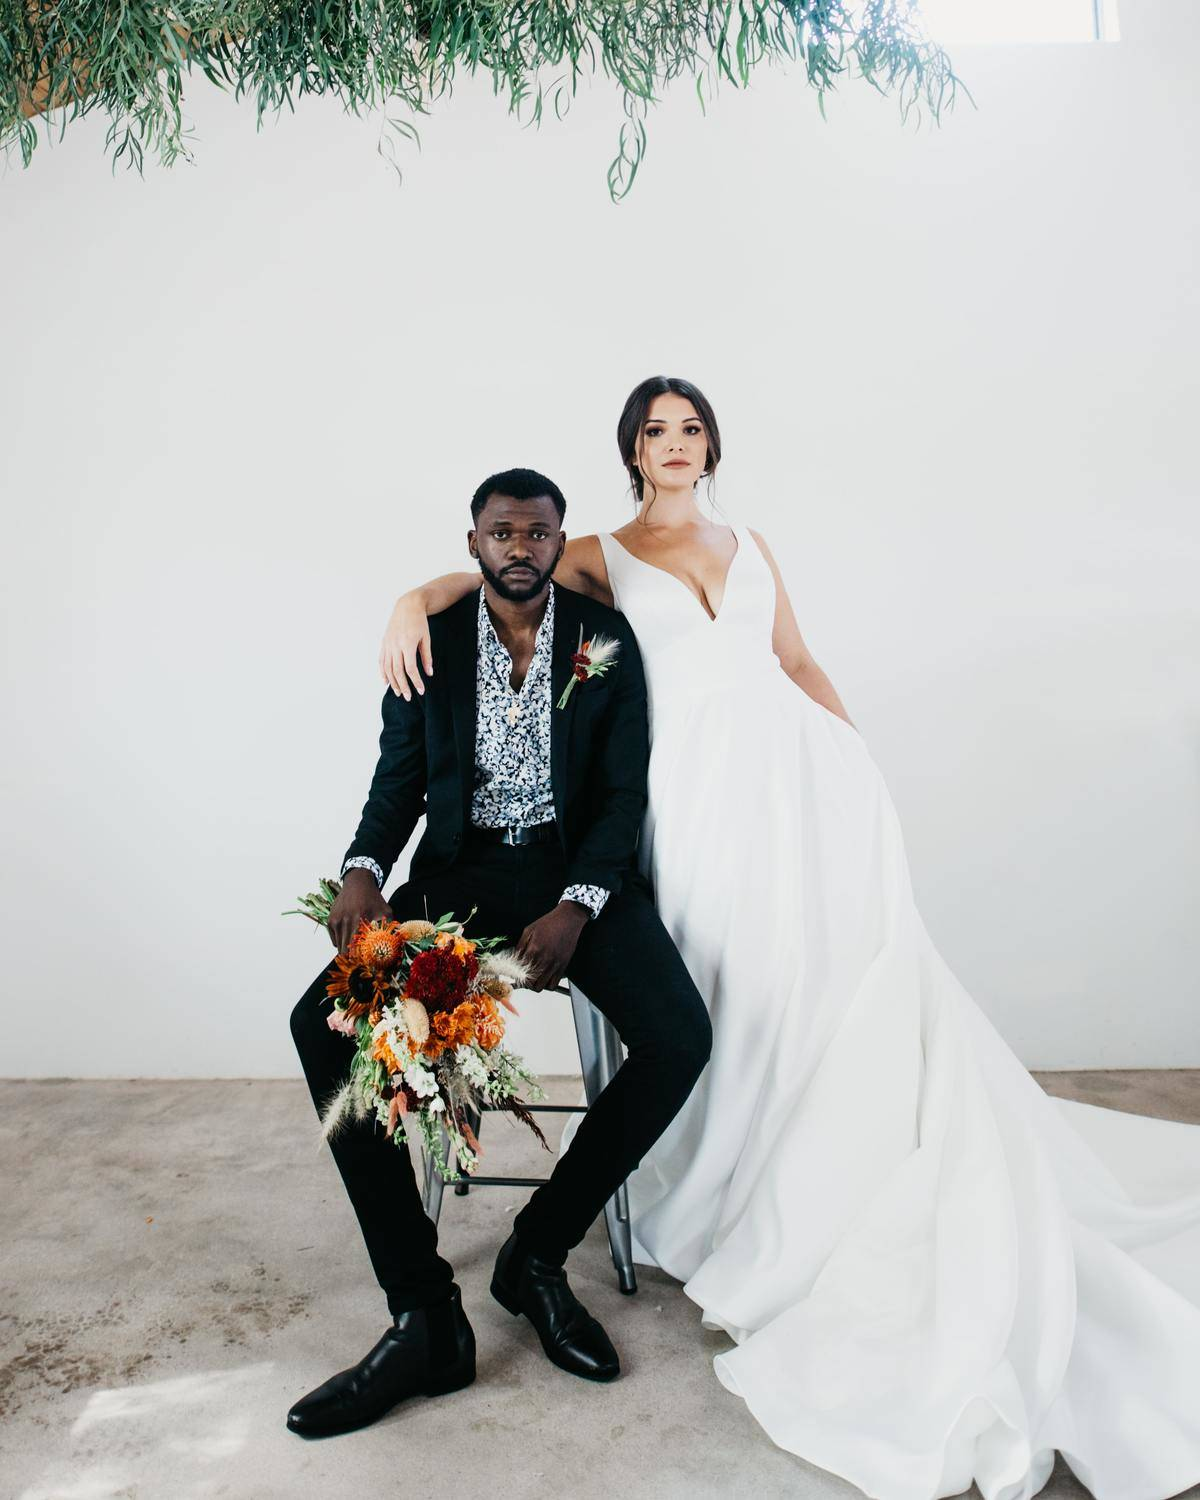 bride and groom pose for photo